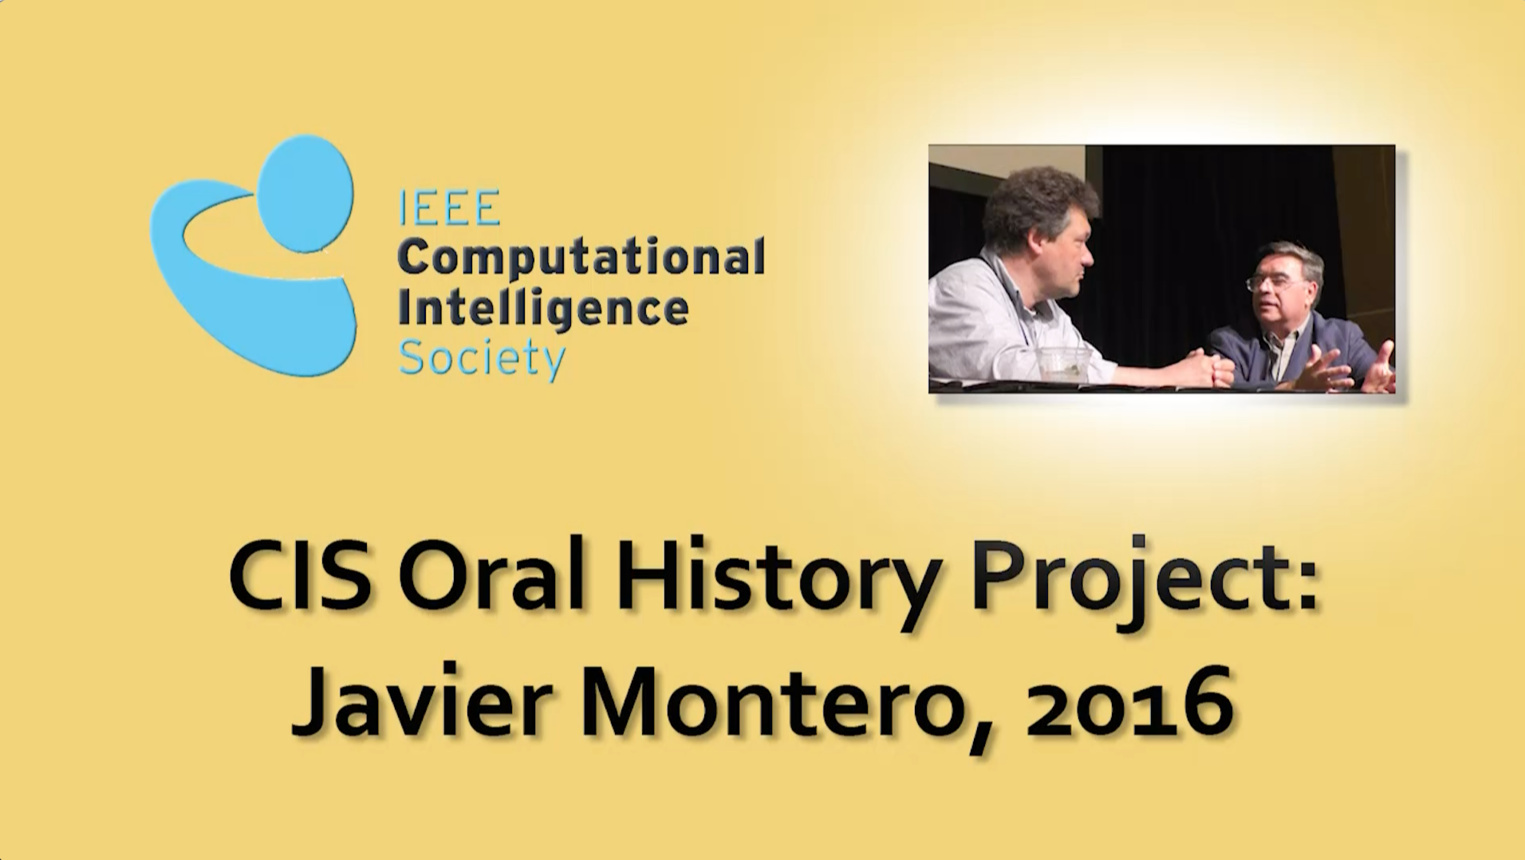 Interview with Javier Montero, 2016: CIS Oral History Project